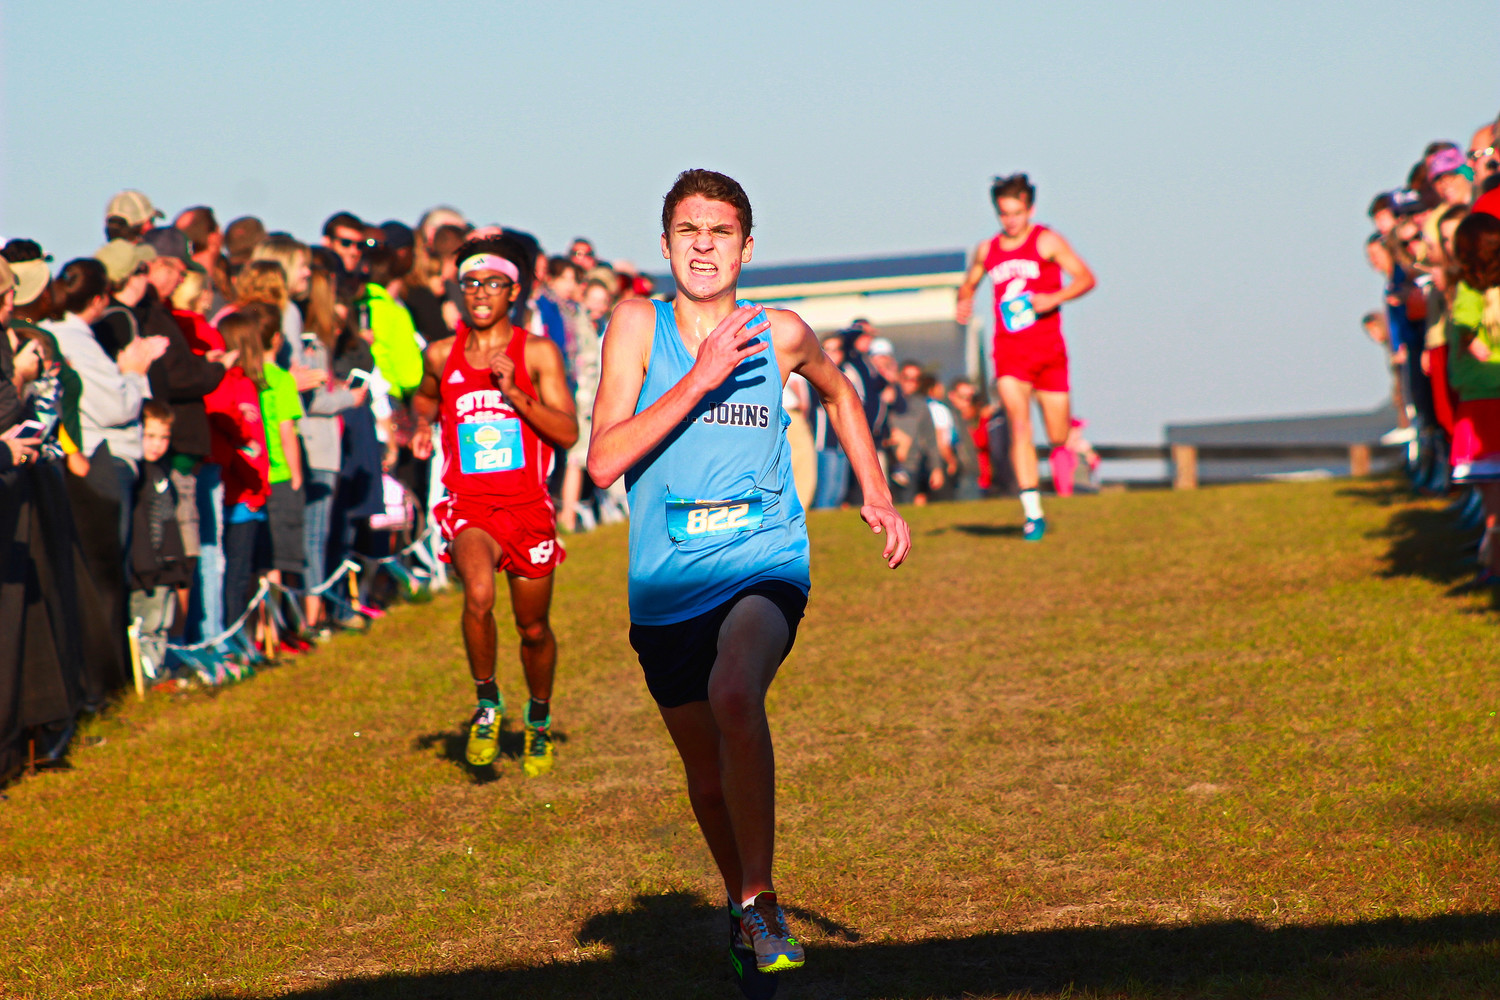 St. Johns Country Day School sophomore Ben Kailes sprints to region finish line.